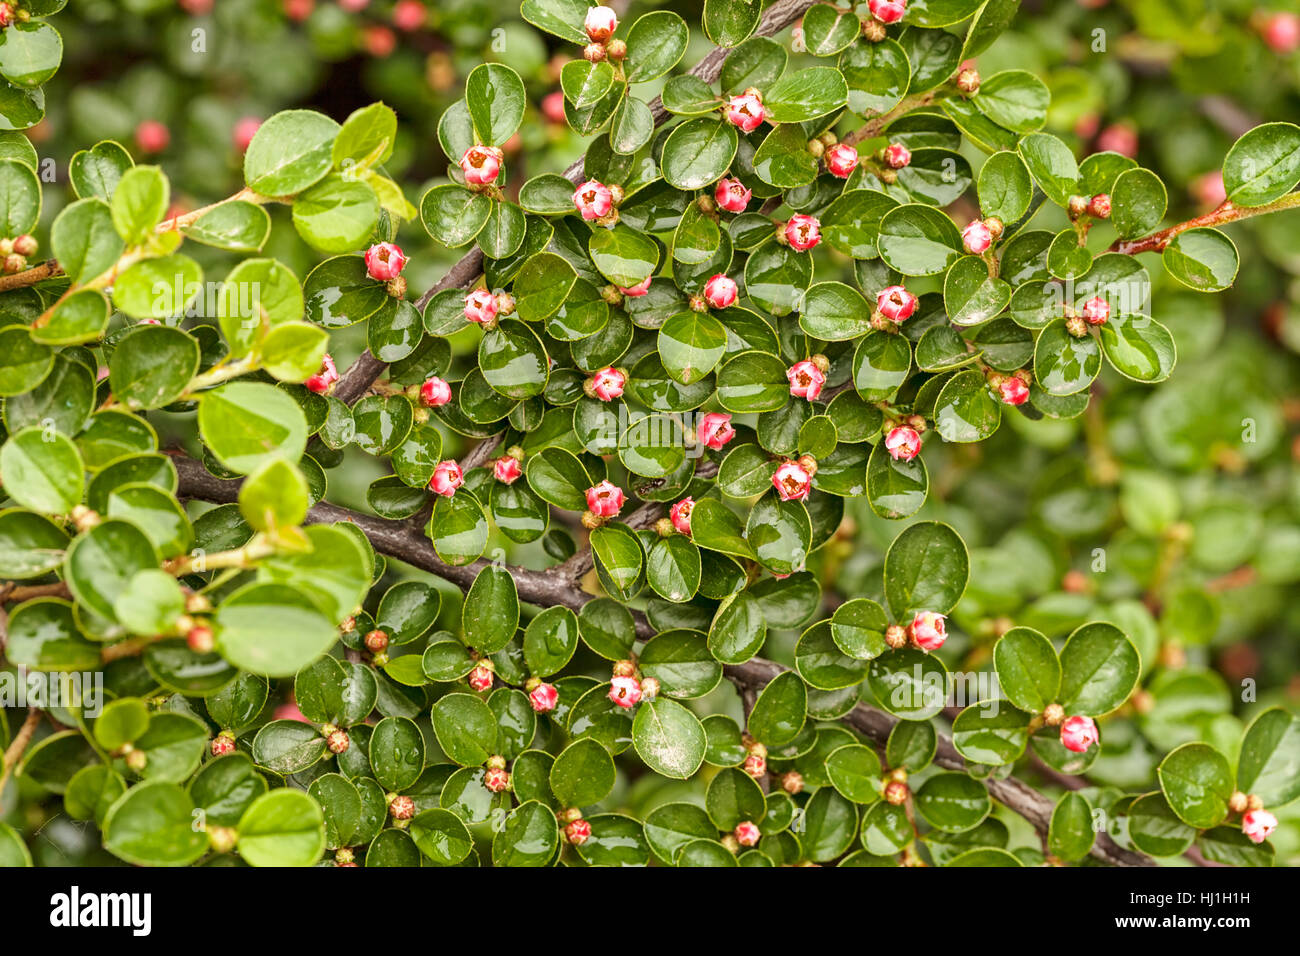 Ornamental shrub with small flowers pink color note shallow depth ornamental shrub with small flowers pink color note shallow depth of field mightylinksfo